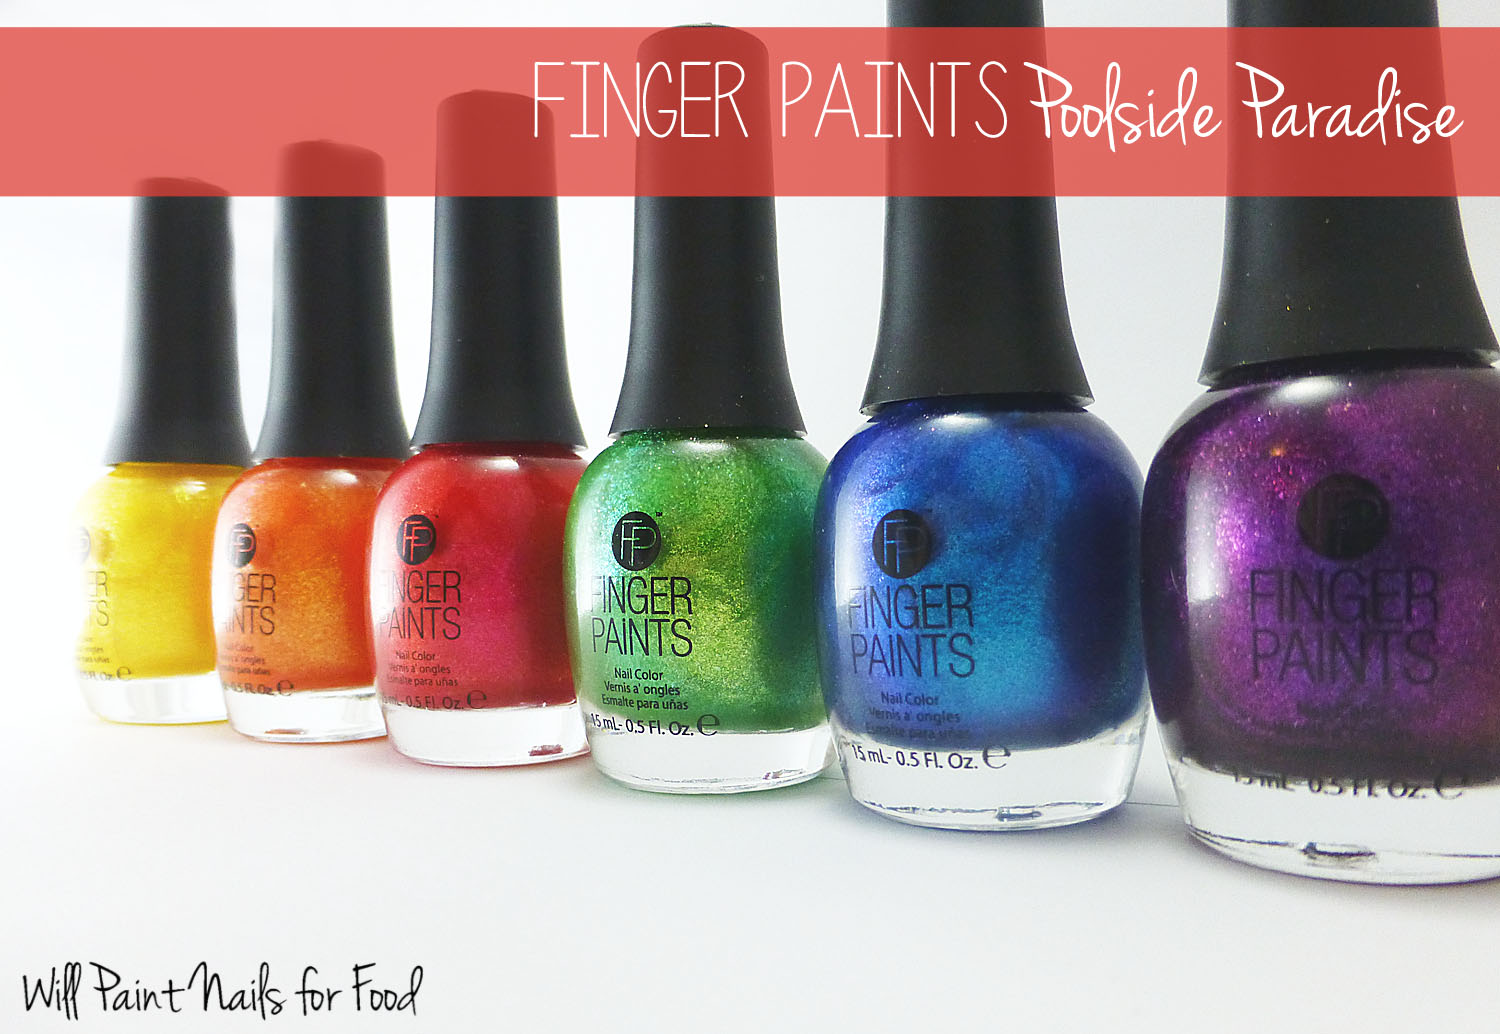 Finger Paints Poolside Paradise Collection